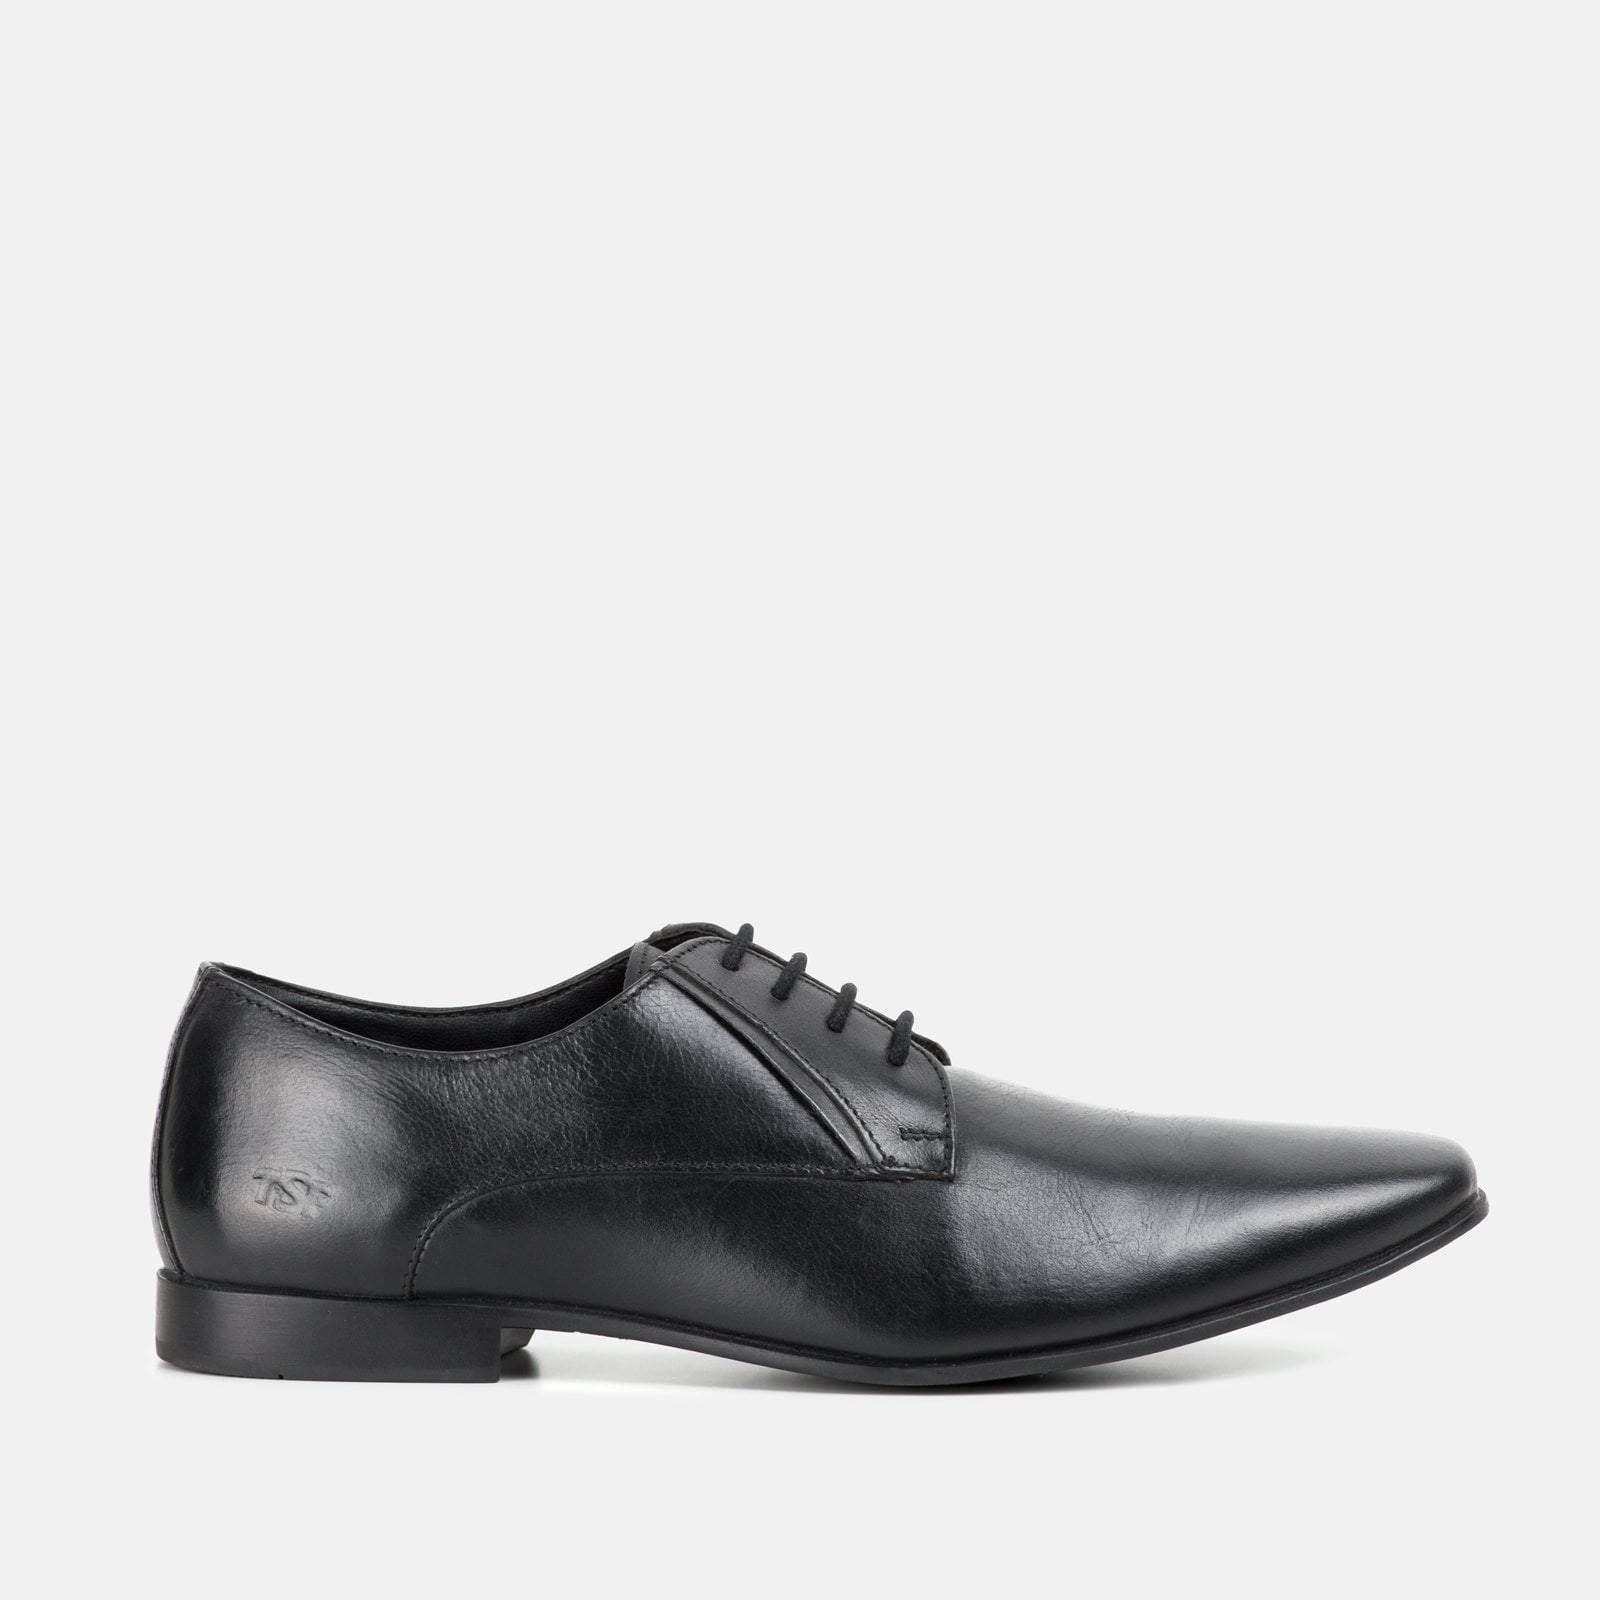 BOND BLACK LEATHER DERBY SHOE